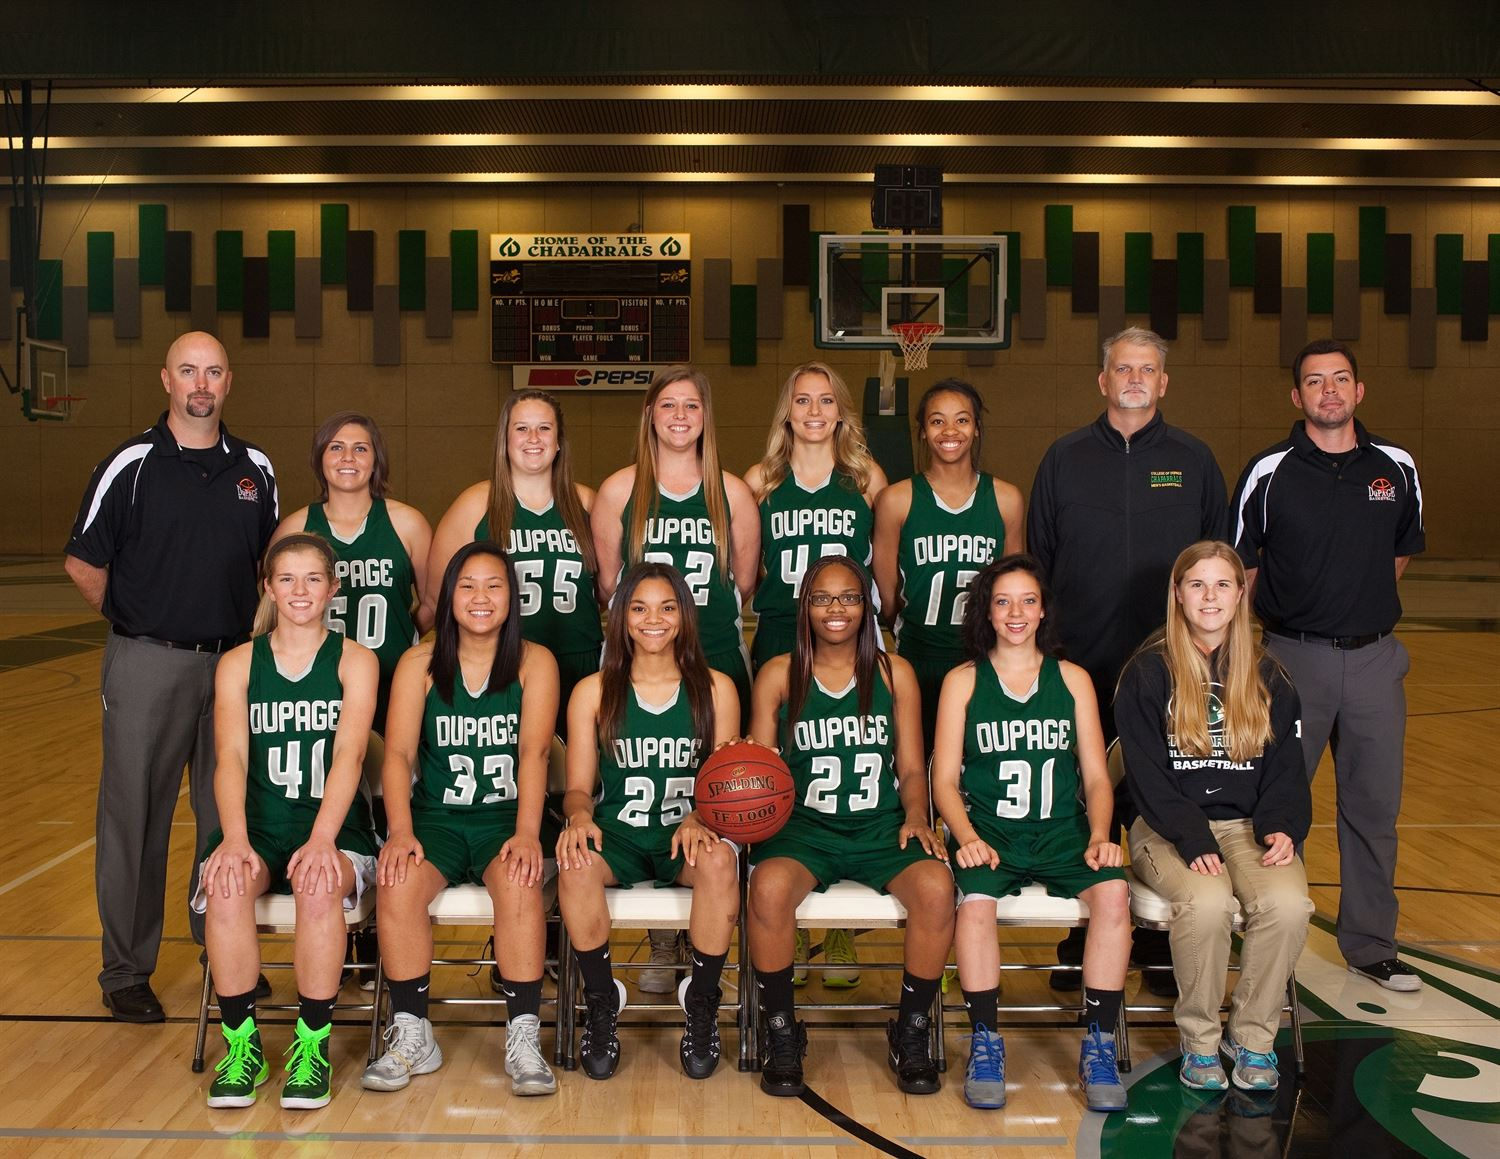 College of DuPage - Women's Basketball